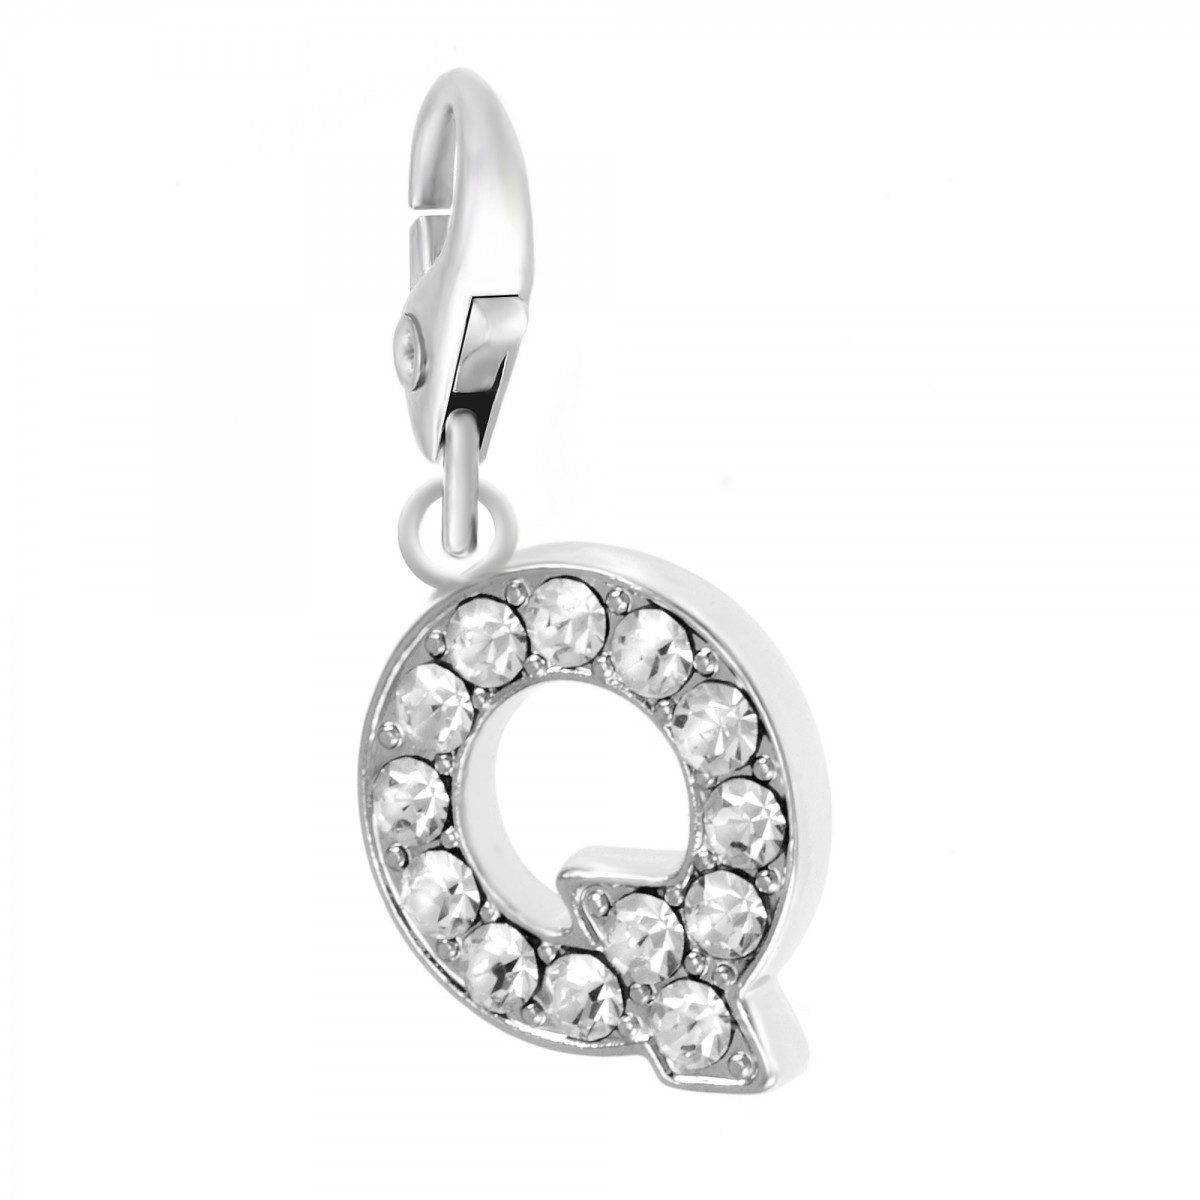 Charm Lettre Q So Charm made with Crystal from Swarovski